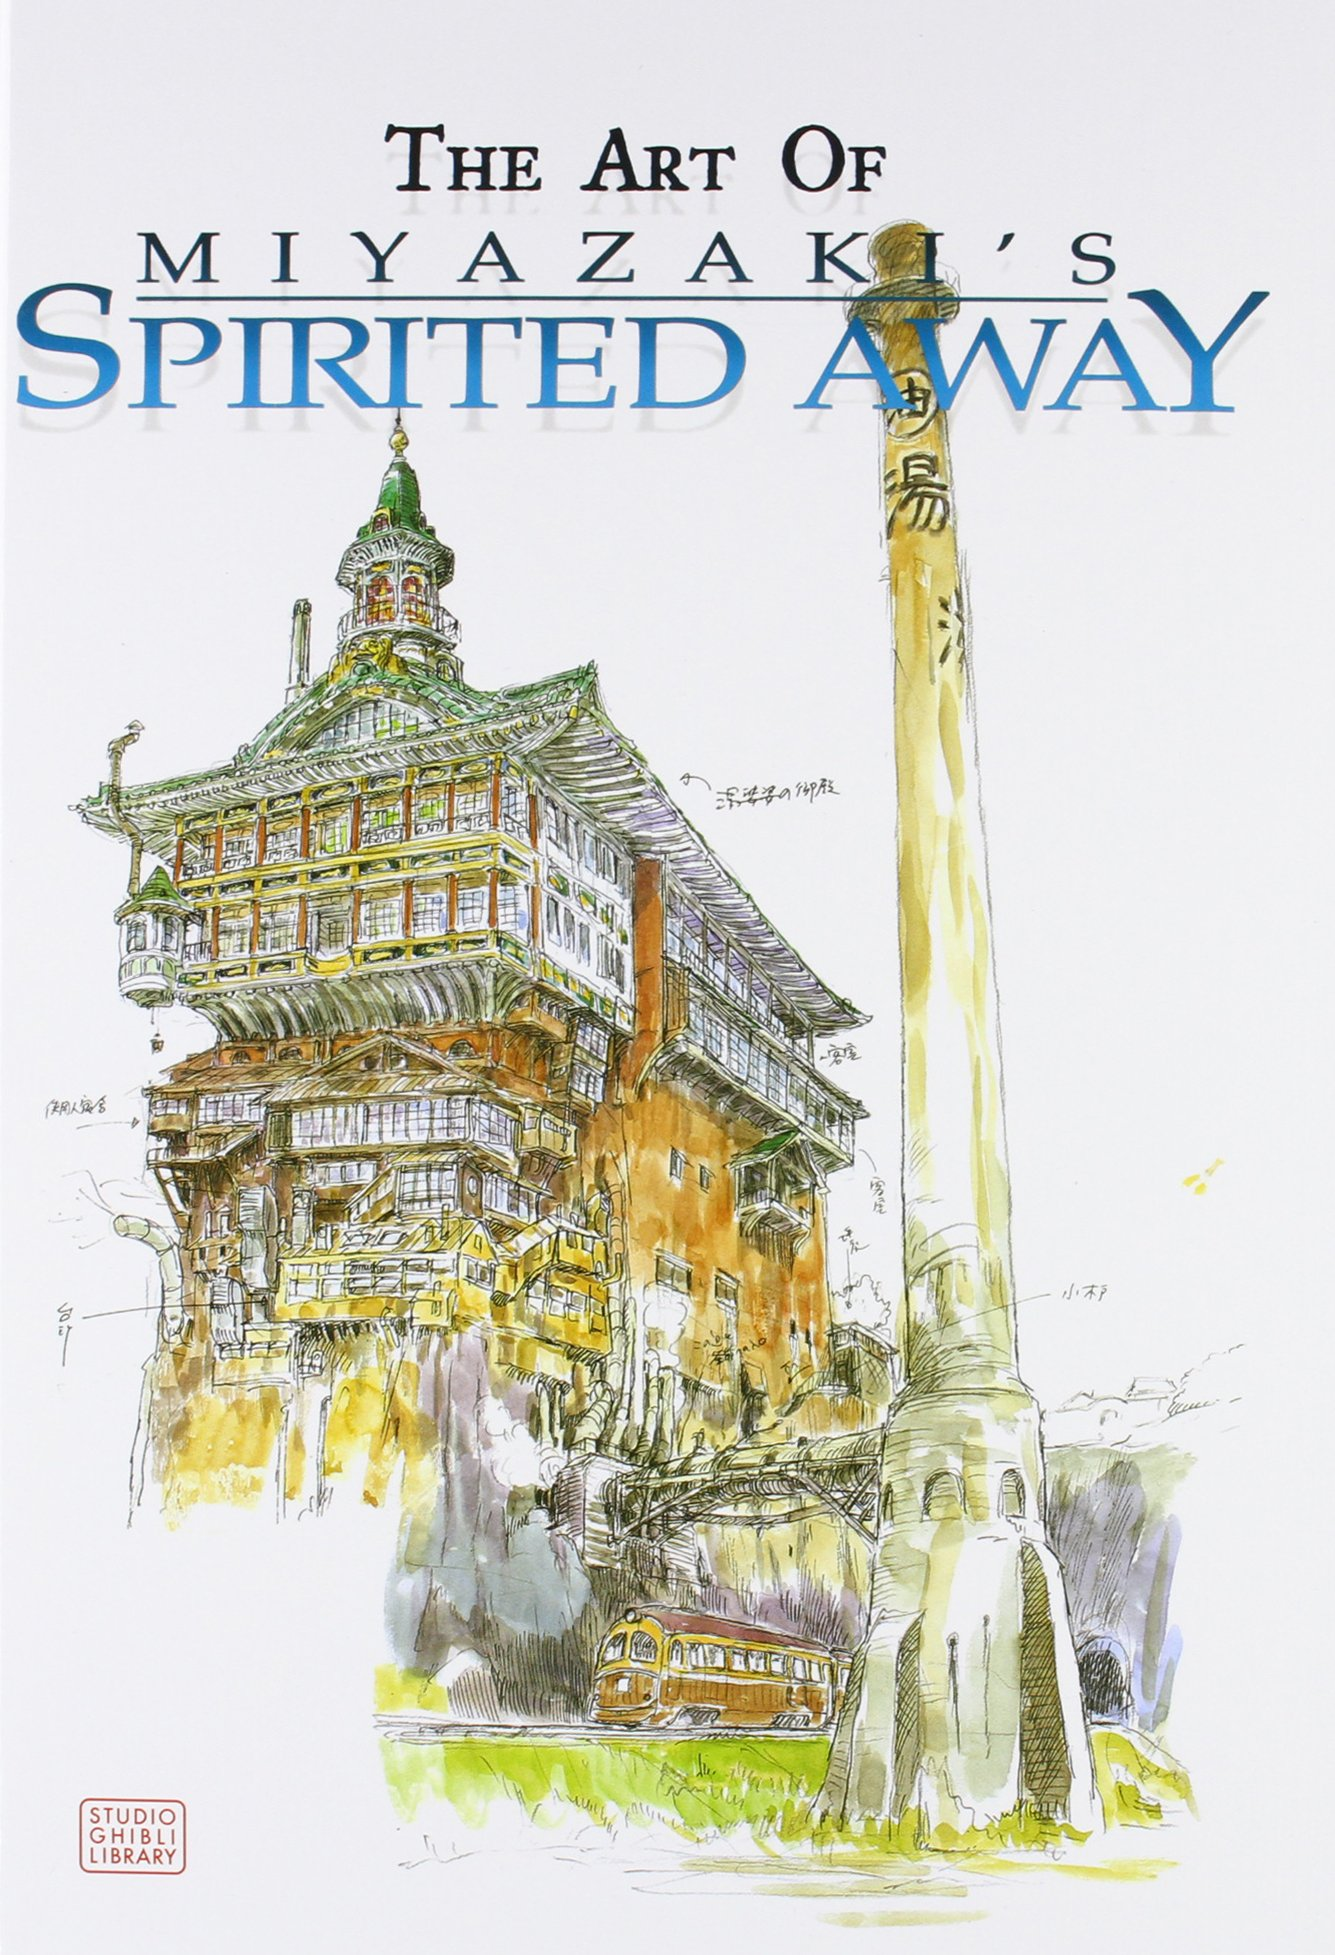 the art of spirited away hayao miyazaki 9781569317778 books